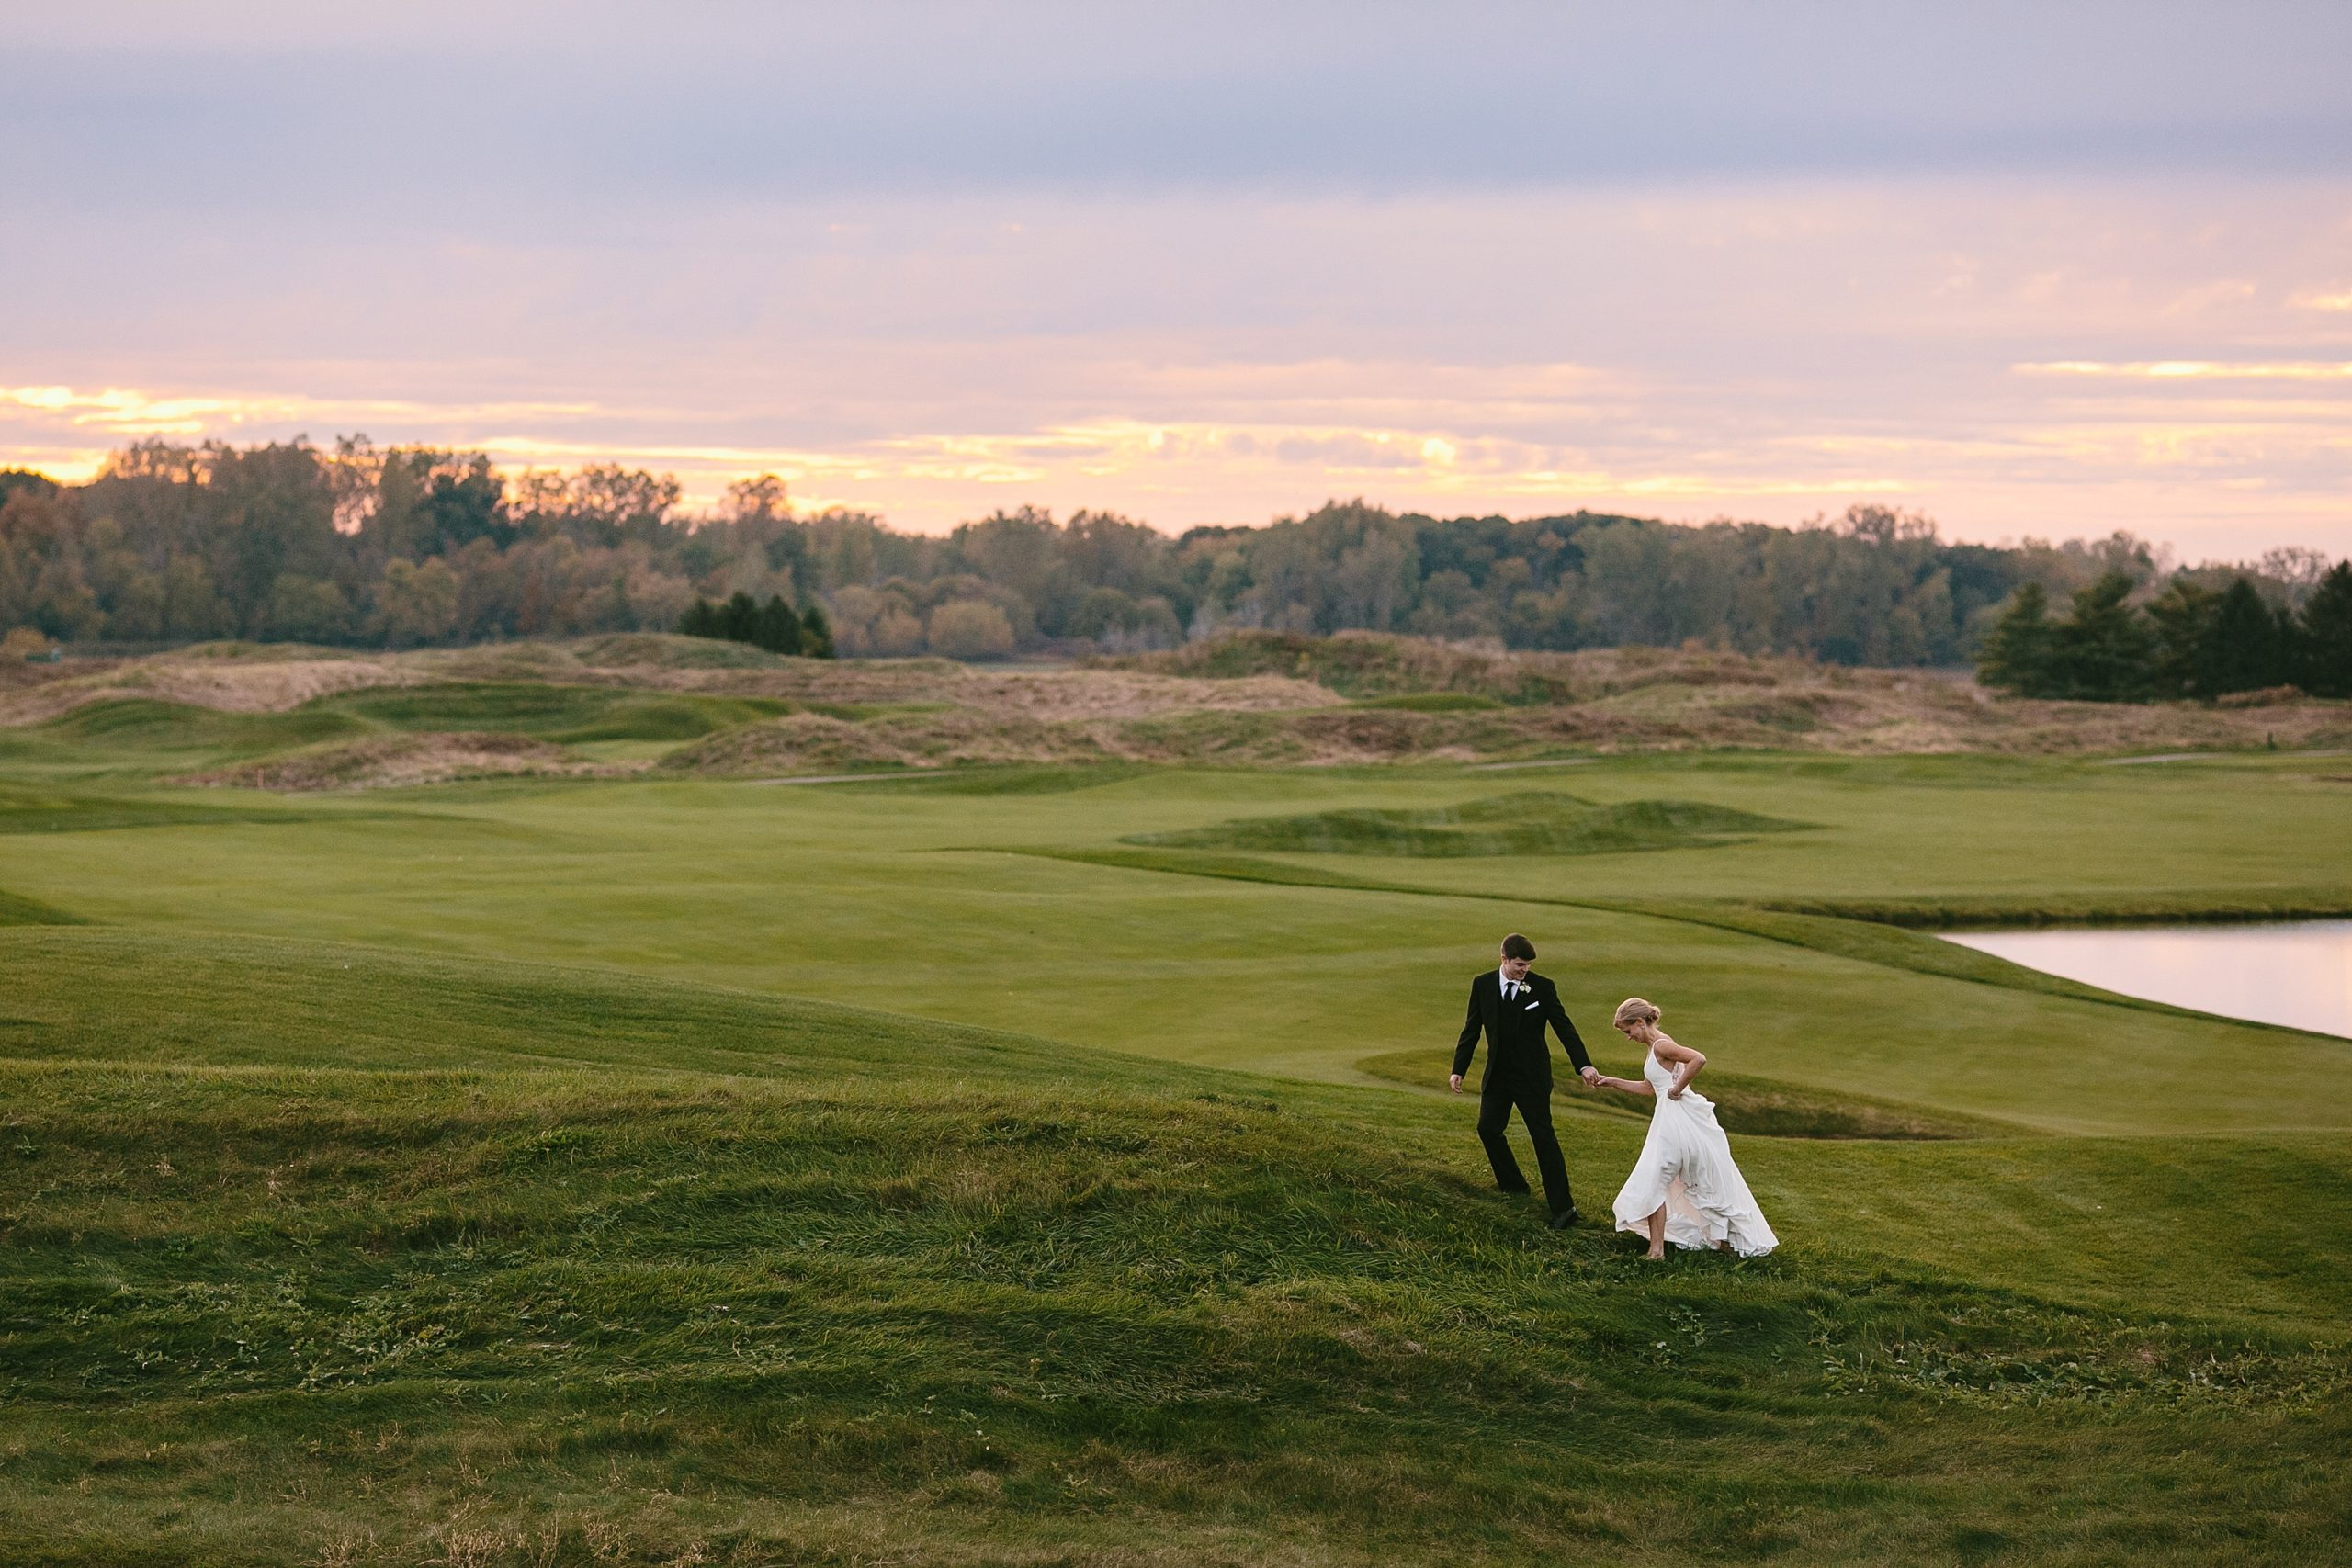 Groom leading bride up hill on a golf course during sunset.